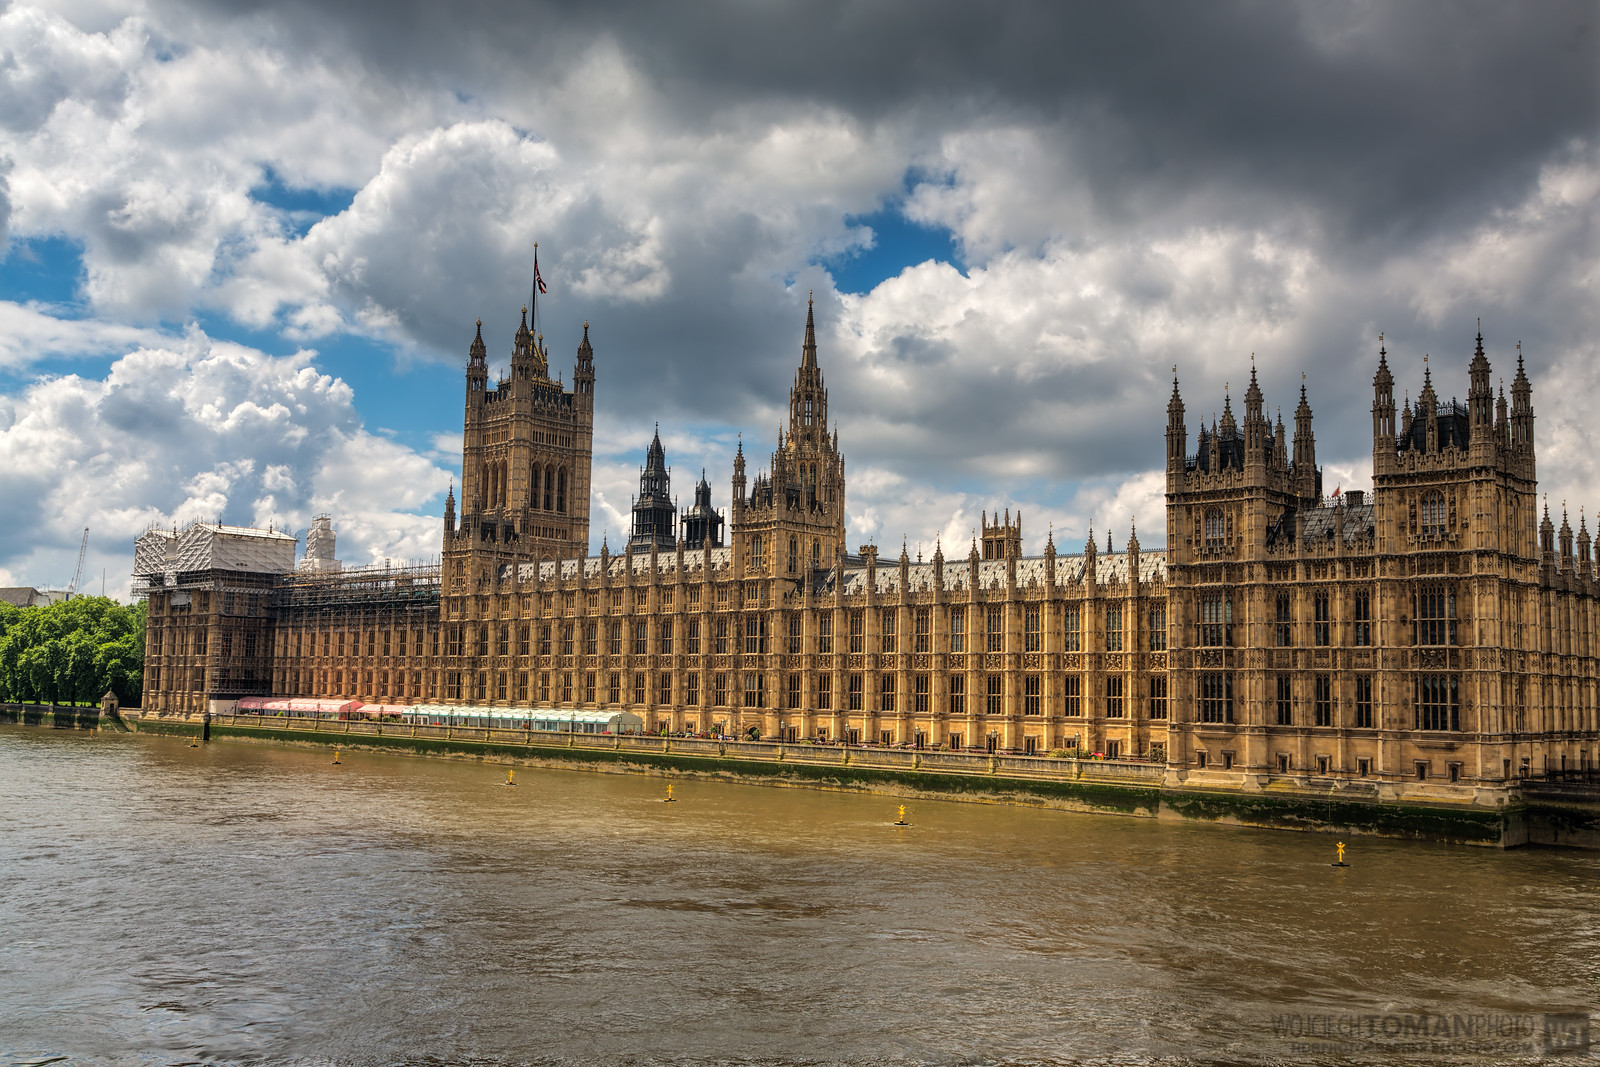 HDR photo of House of Parliament in London taken from Westminster Bridge.